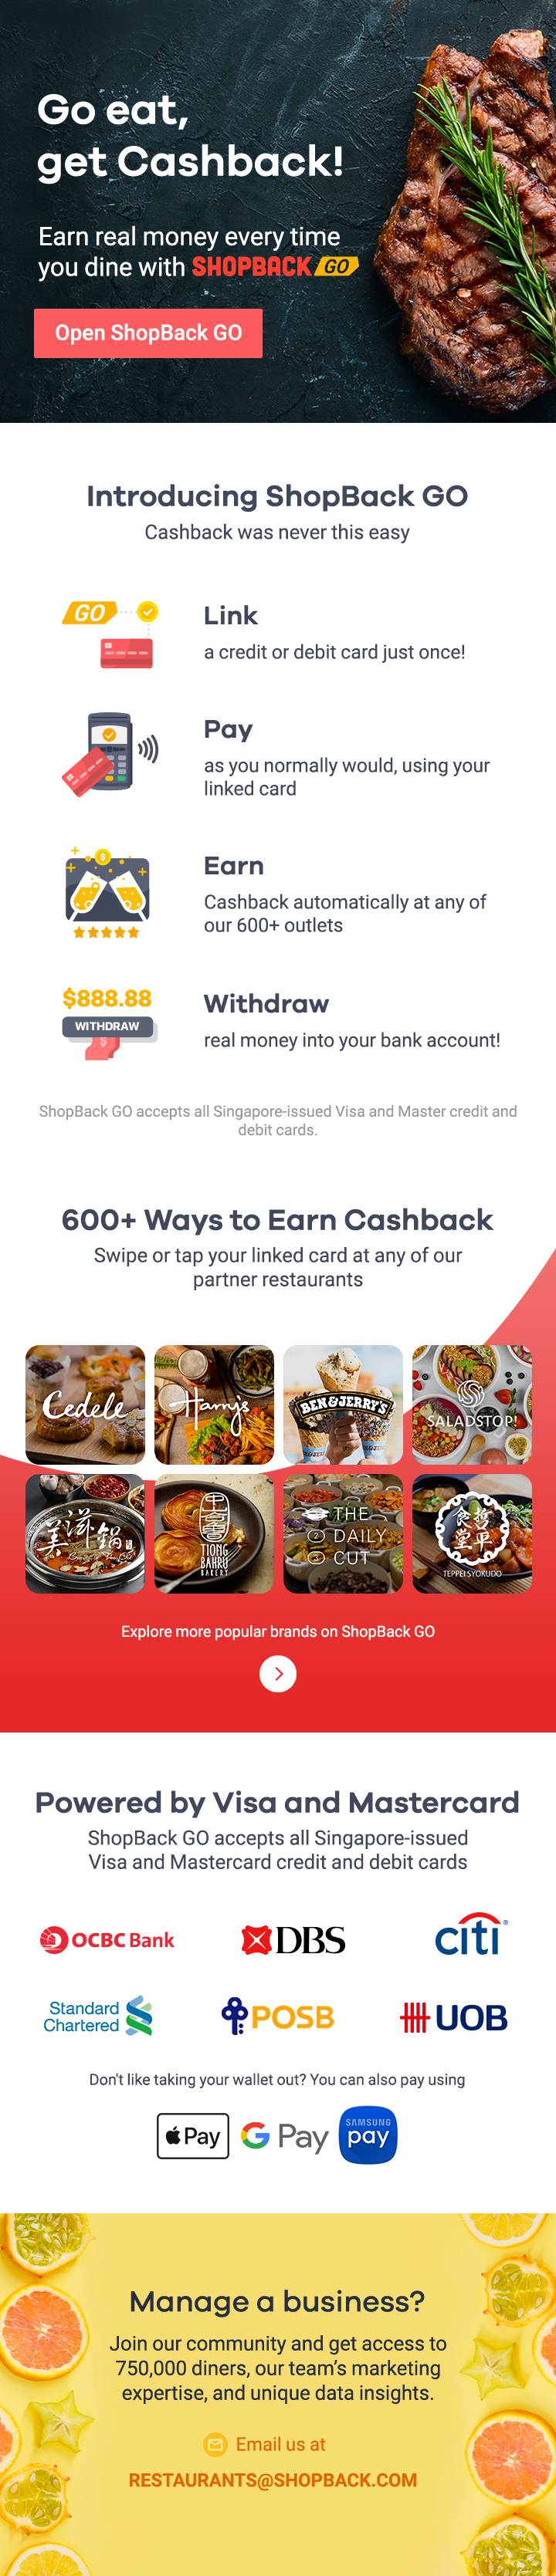 How ShopBack GO Works